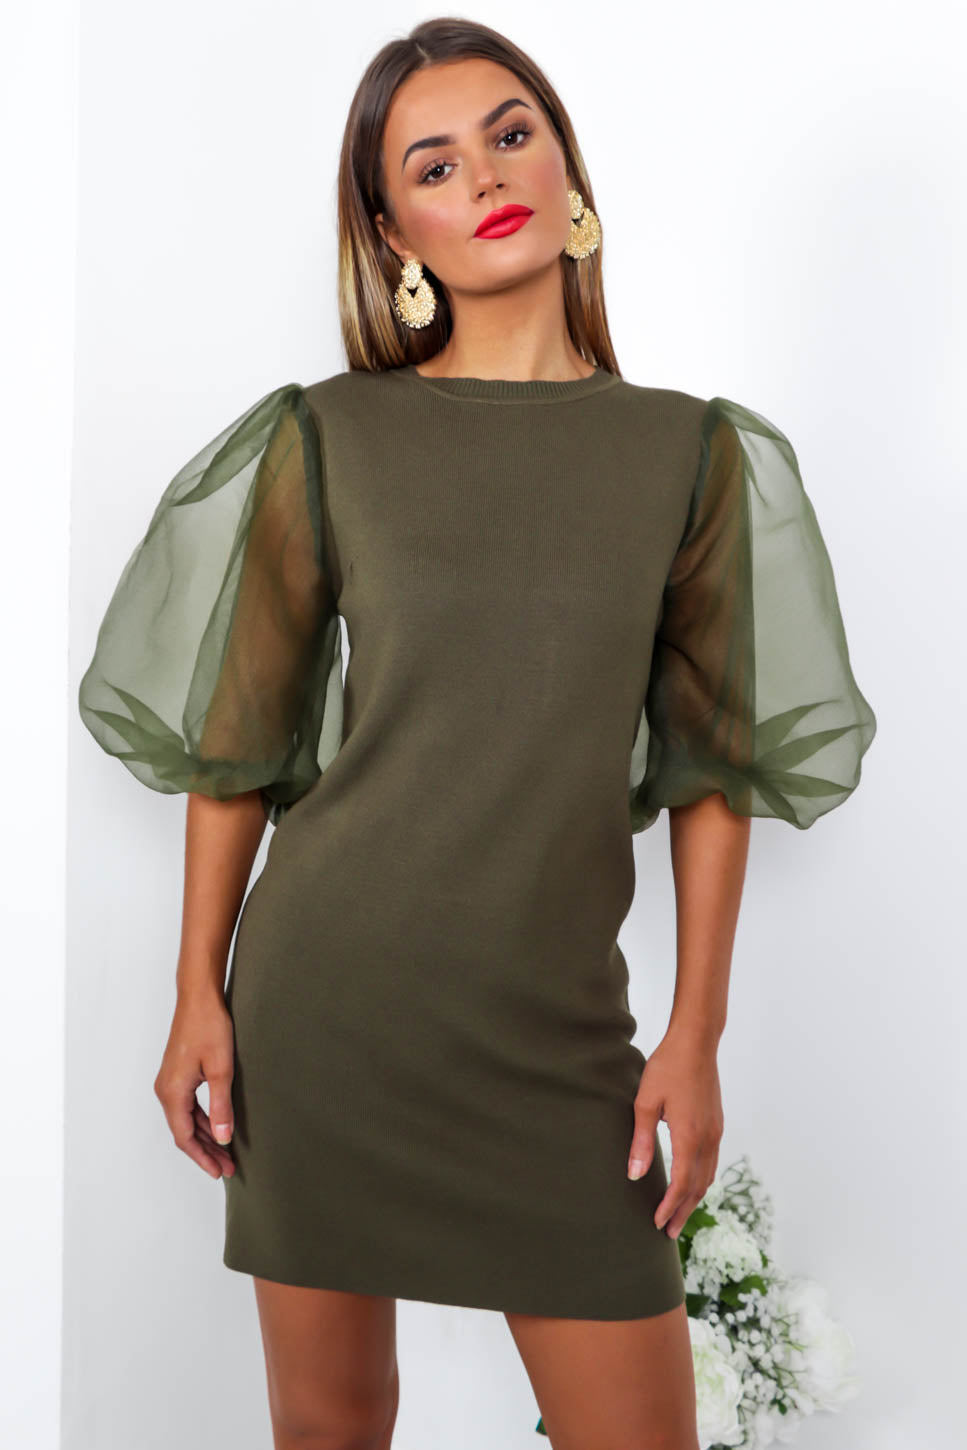 Right Sheer Right Now - Mini Dress In KHAKI